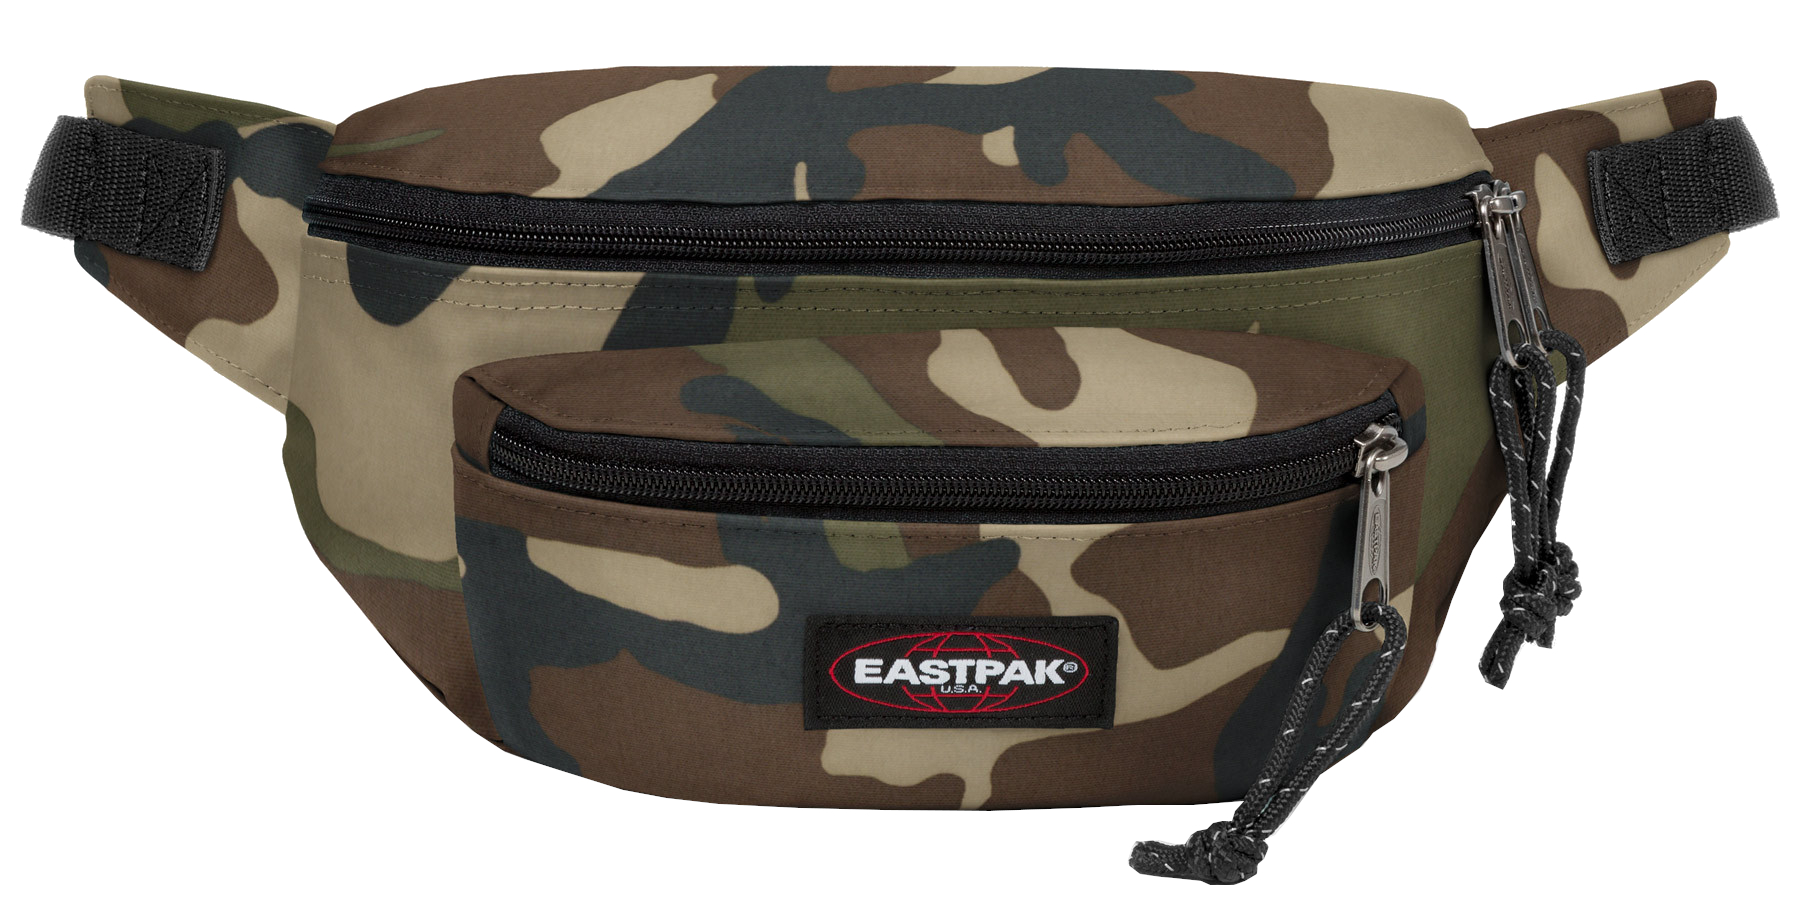 Eastpak 'Doggy Bag' Gürteltasche 3l camo